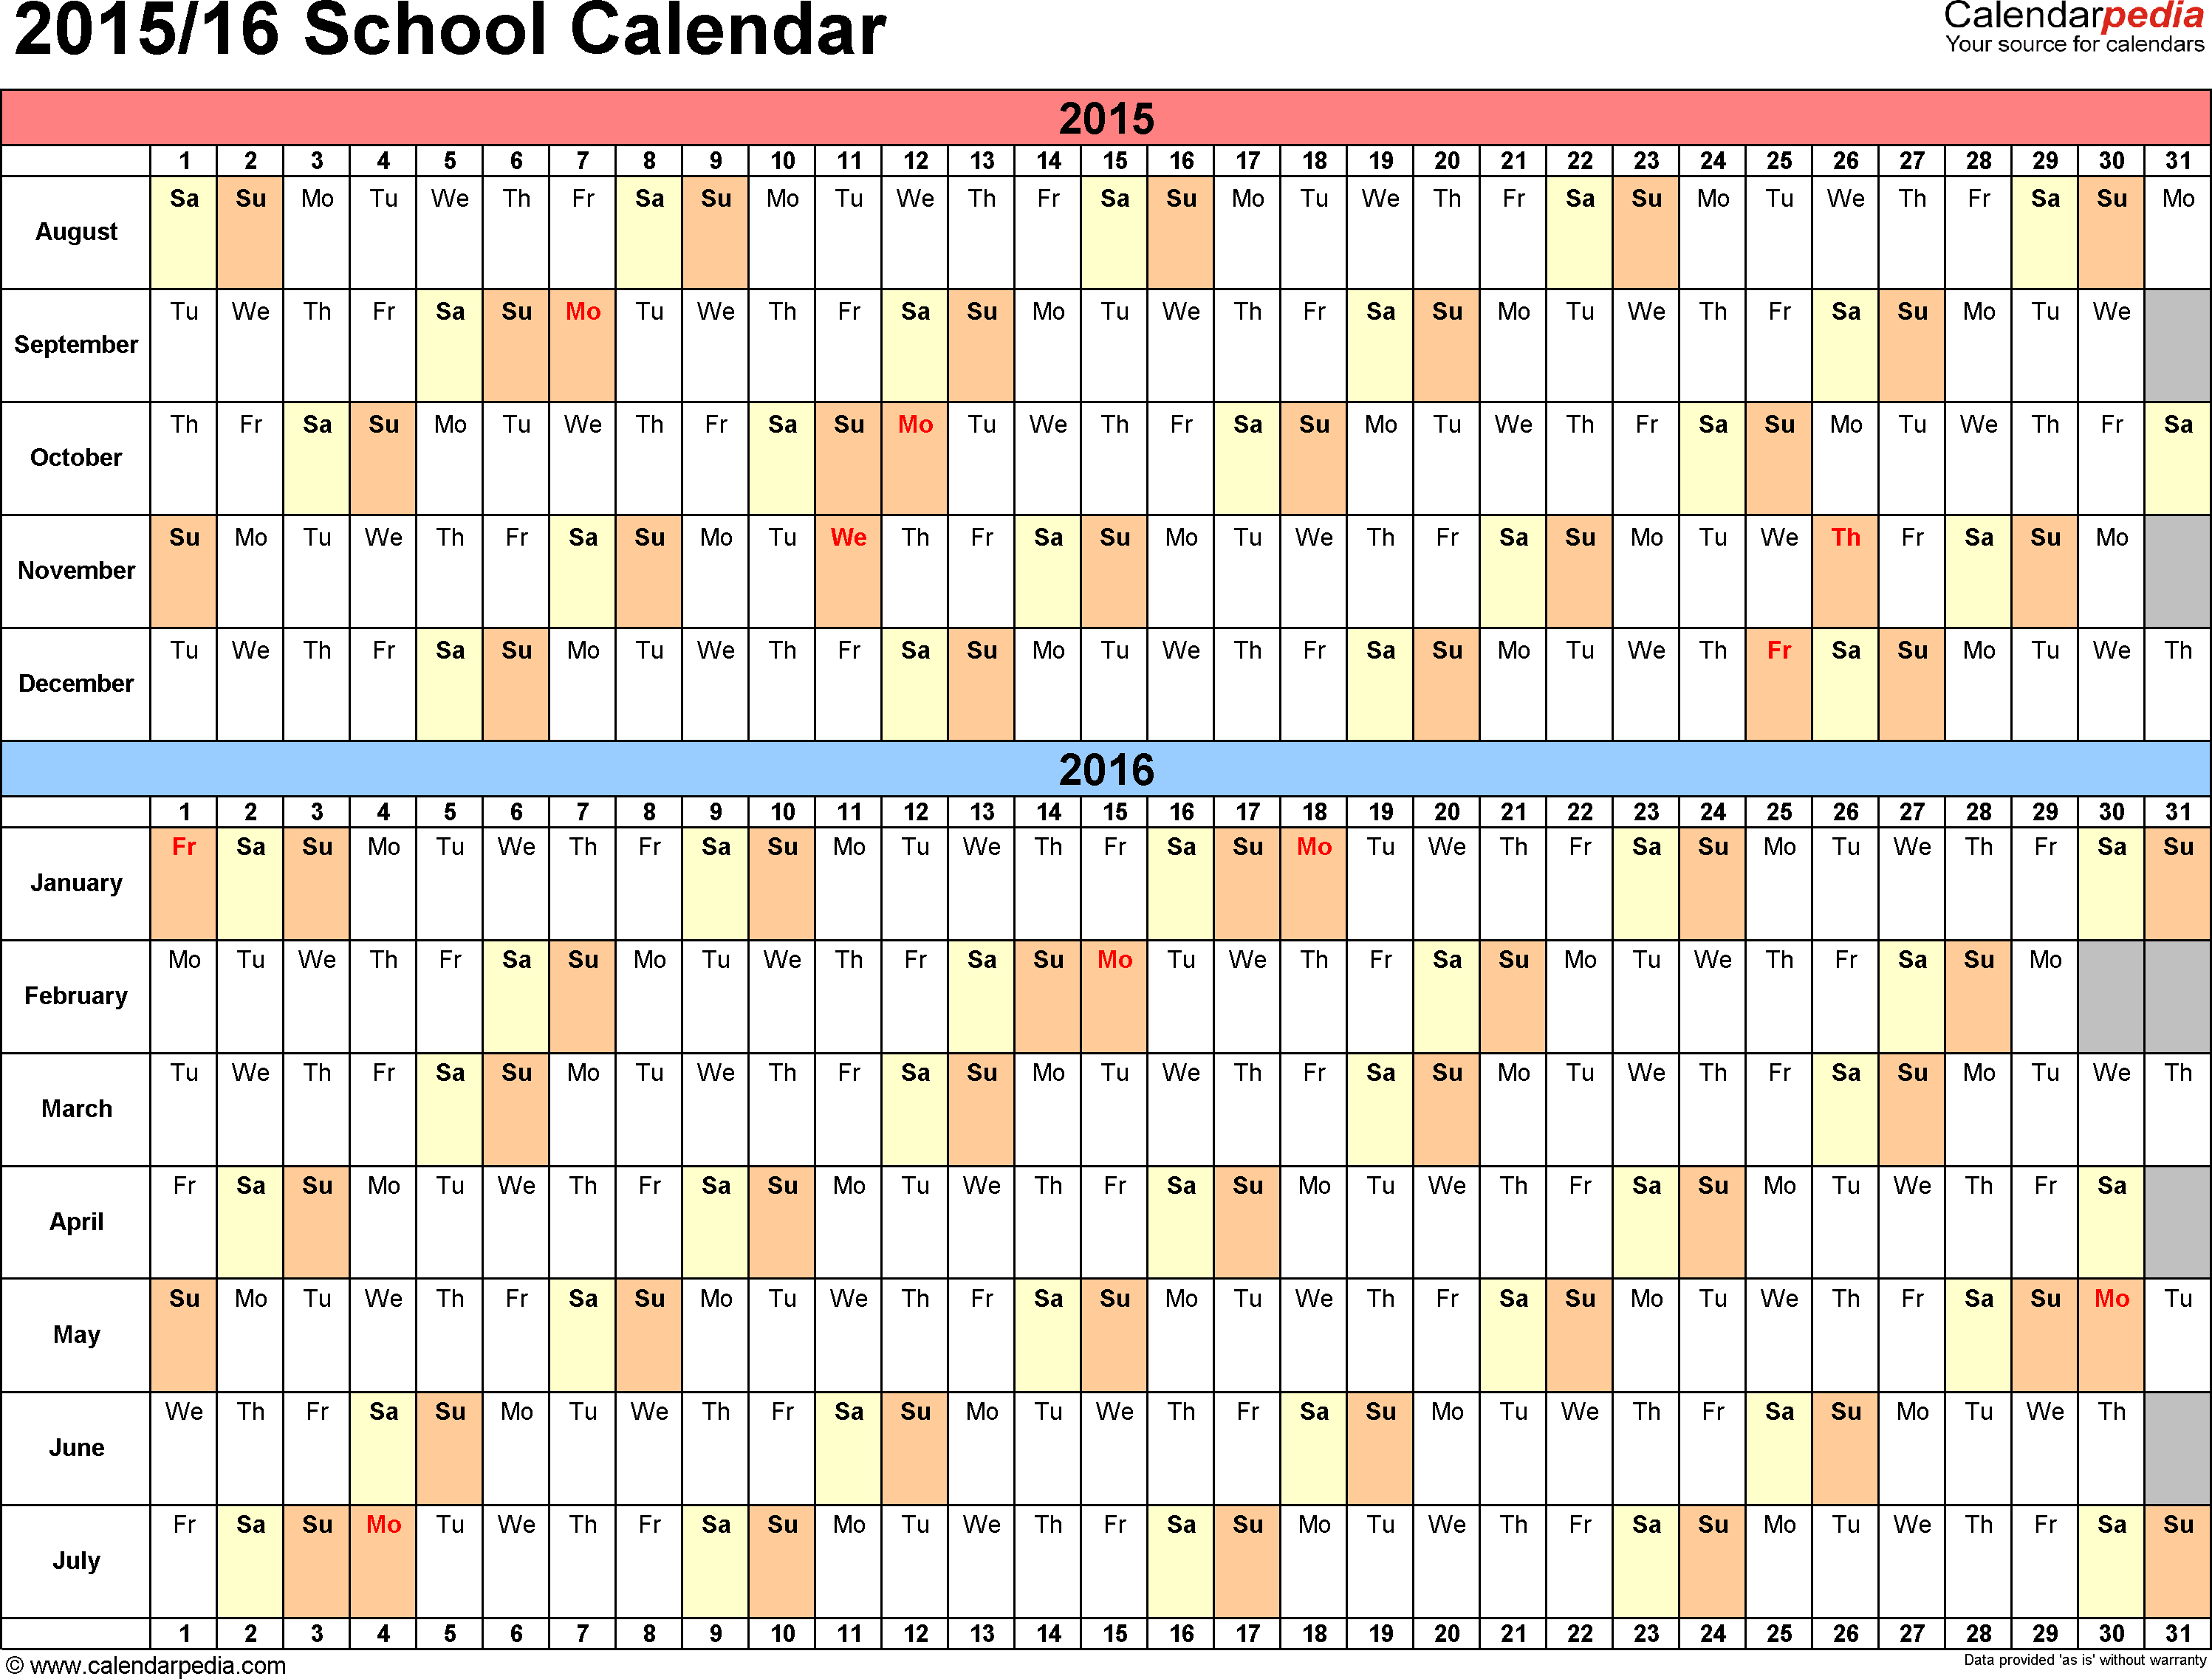 2020 And 2016 School Calendar Printable School calendars 2015/2016 as free printable Word templates